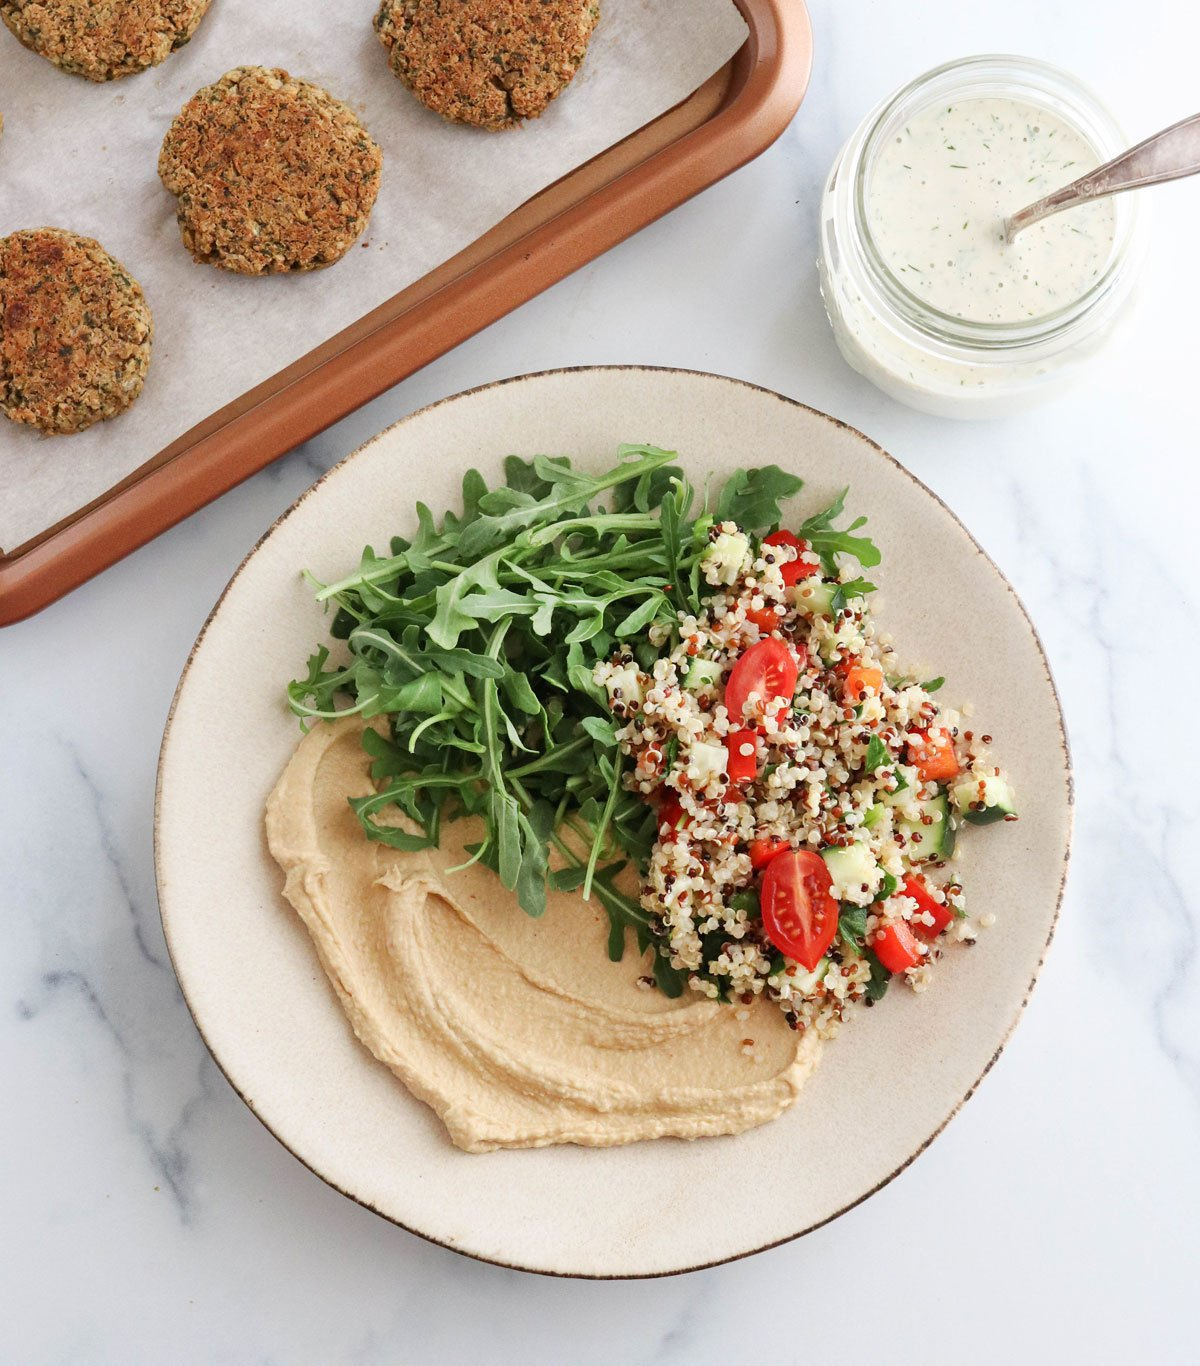 falafel bowl components added to large plate